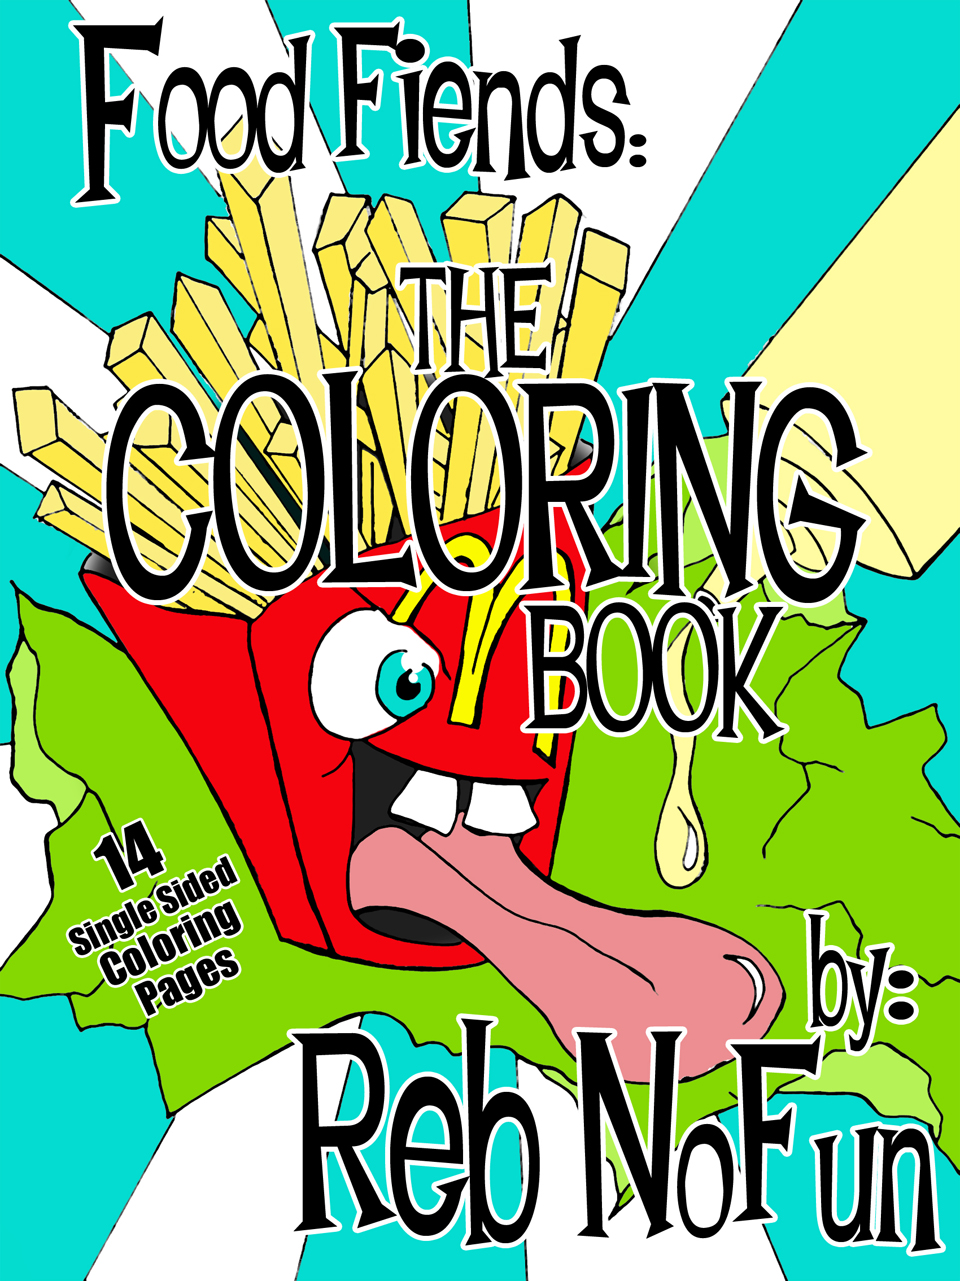 You are currently viewing Food Fiends! Reb NoFun has a Coloring Book!